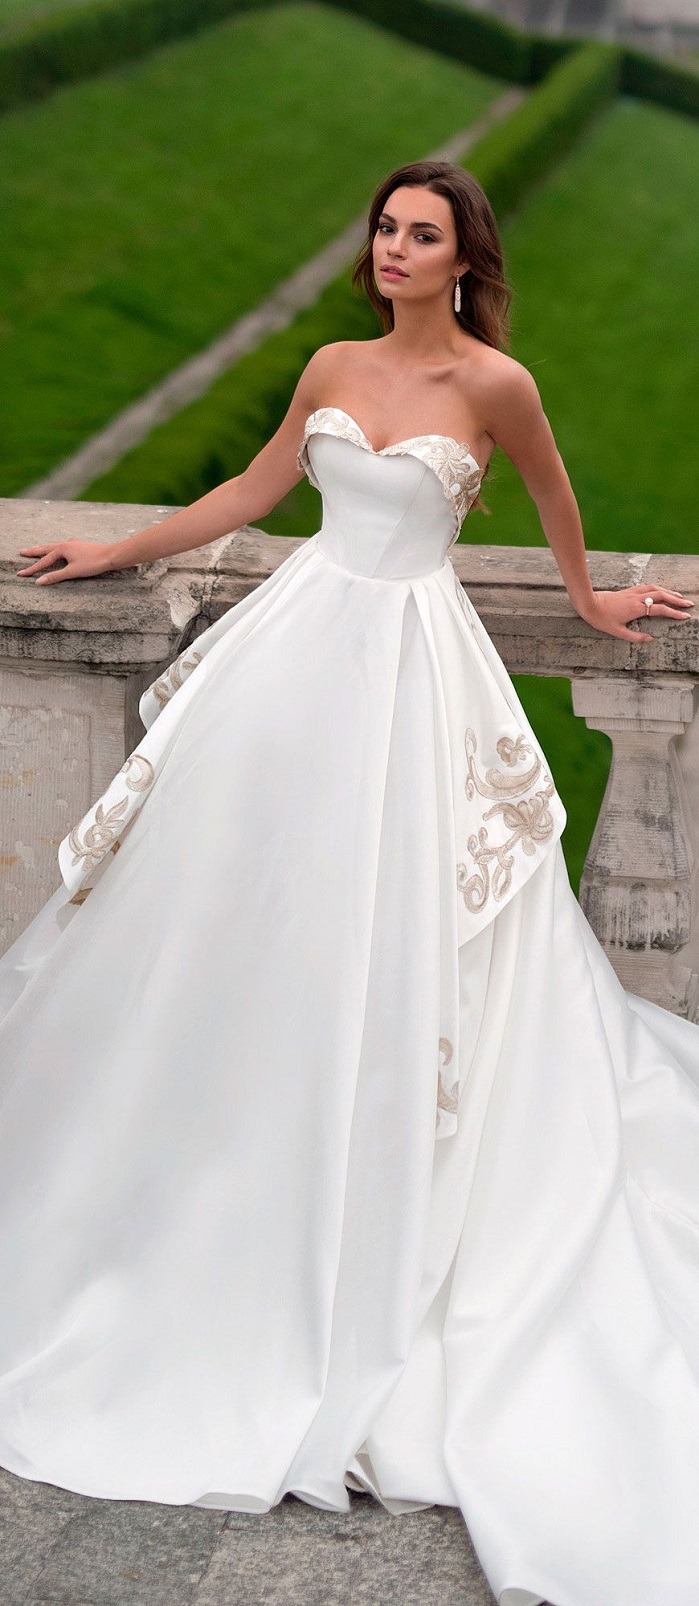 sweetheart neckline sleeveless ball gown a line wedding dress chapel train #weddinggown #weddingdresses #wedding #weddings #bridedress #weddinggowns